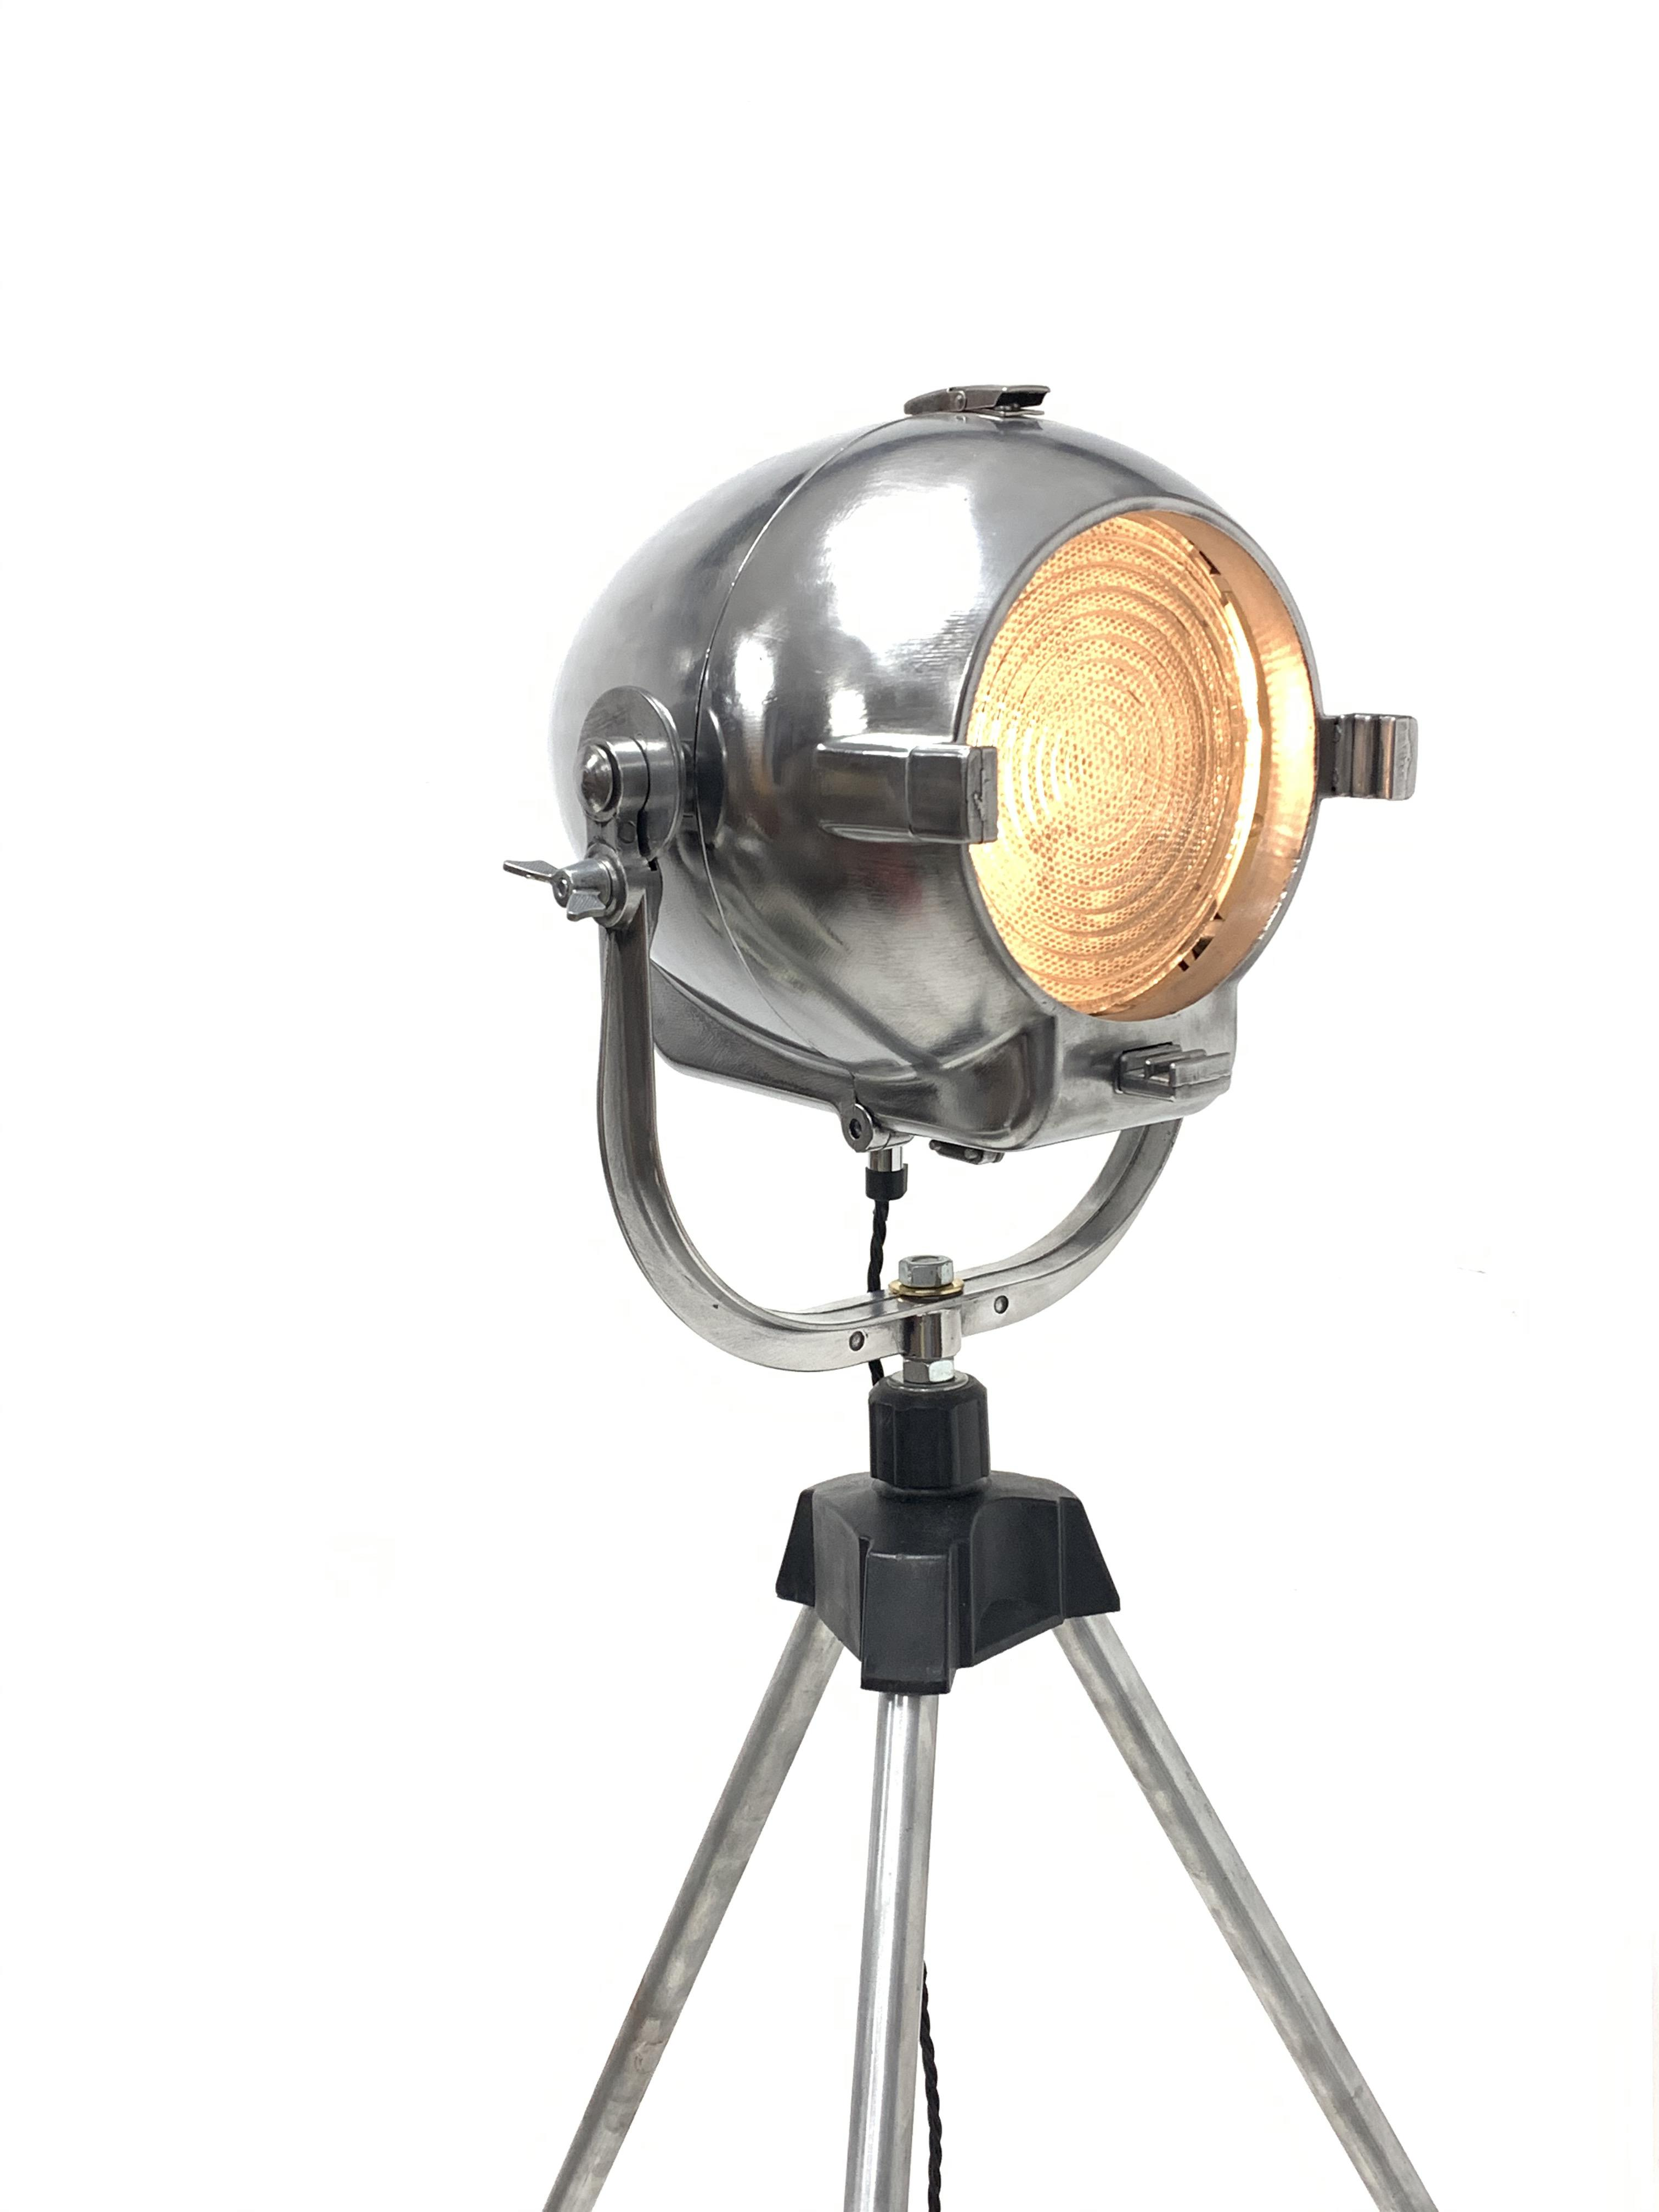 Mid 20th century 'Rank Strand' polished alloy stage light - Image 2 of 3